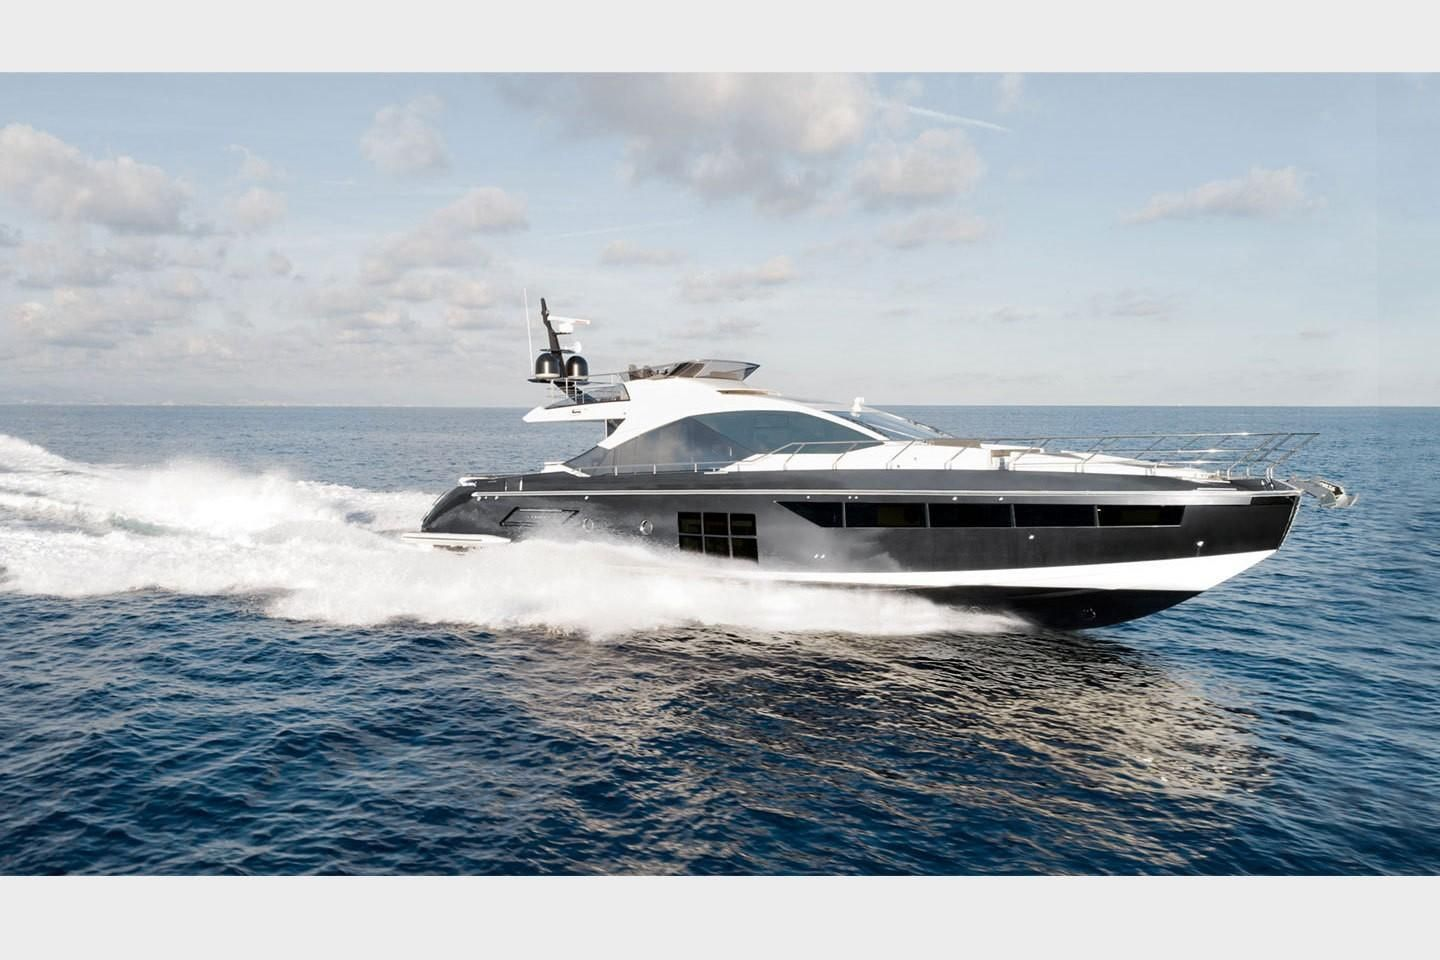 Thumbnail 1 for 2021 Azimut S7